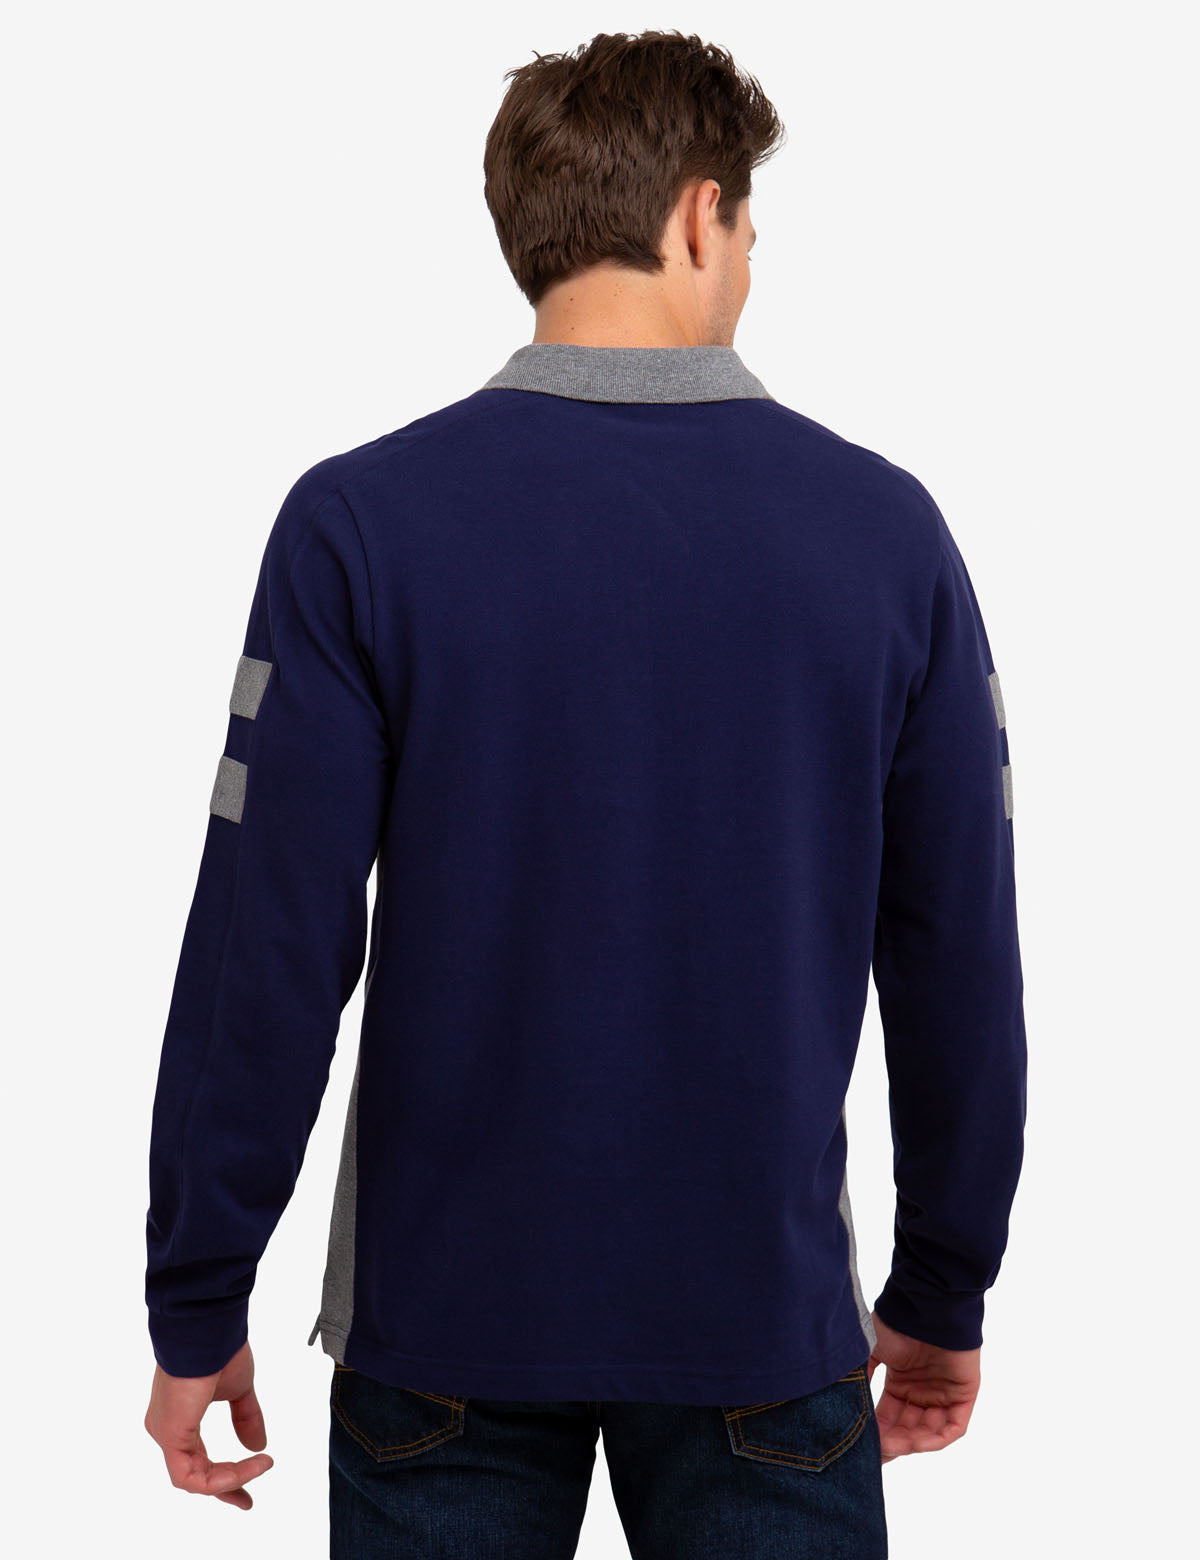 SIDE STRIPE LONG SLEEVE POLO SHIRT - U.S. Polo Assn.